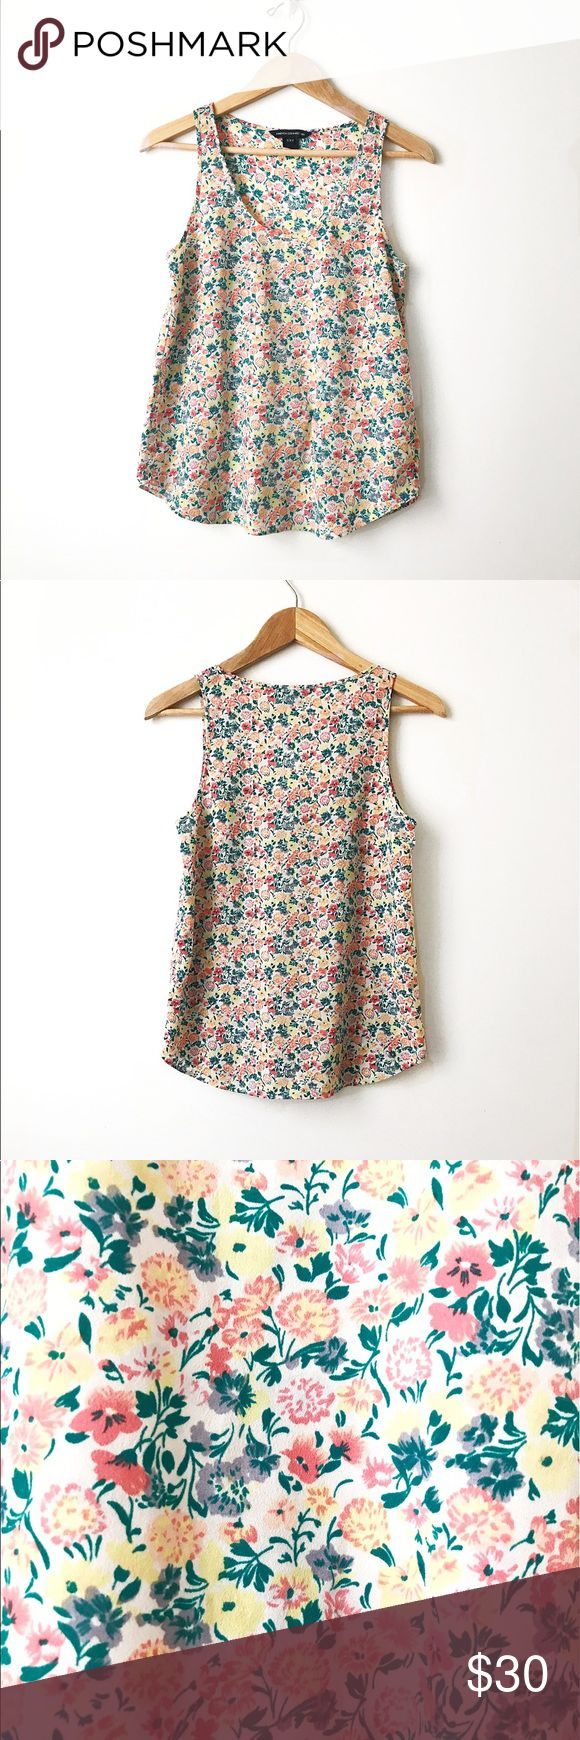 French Connection sleeveless foral top Sleeveless floral top. Flowy comfortable silky material. Gorgeous for summer . French Connection Tops Blouses